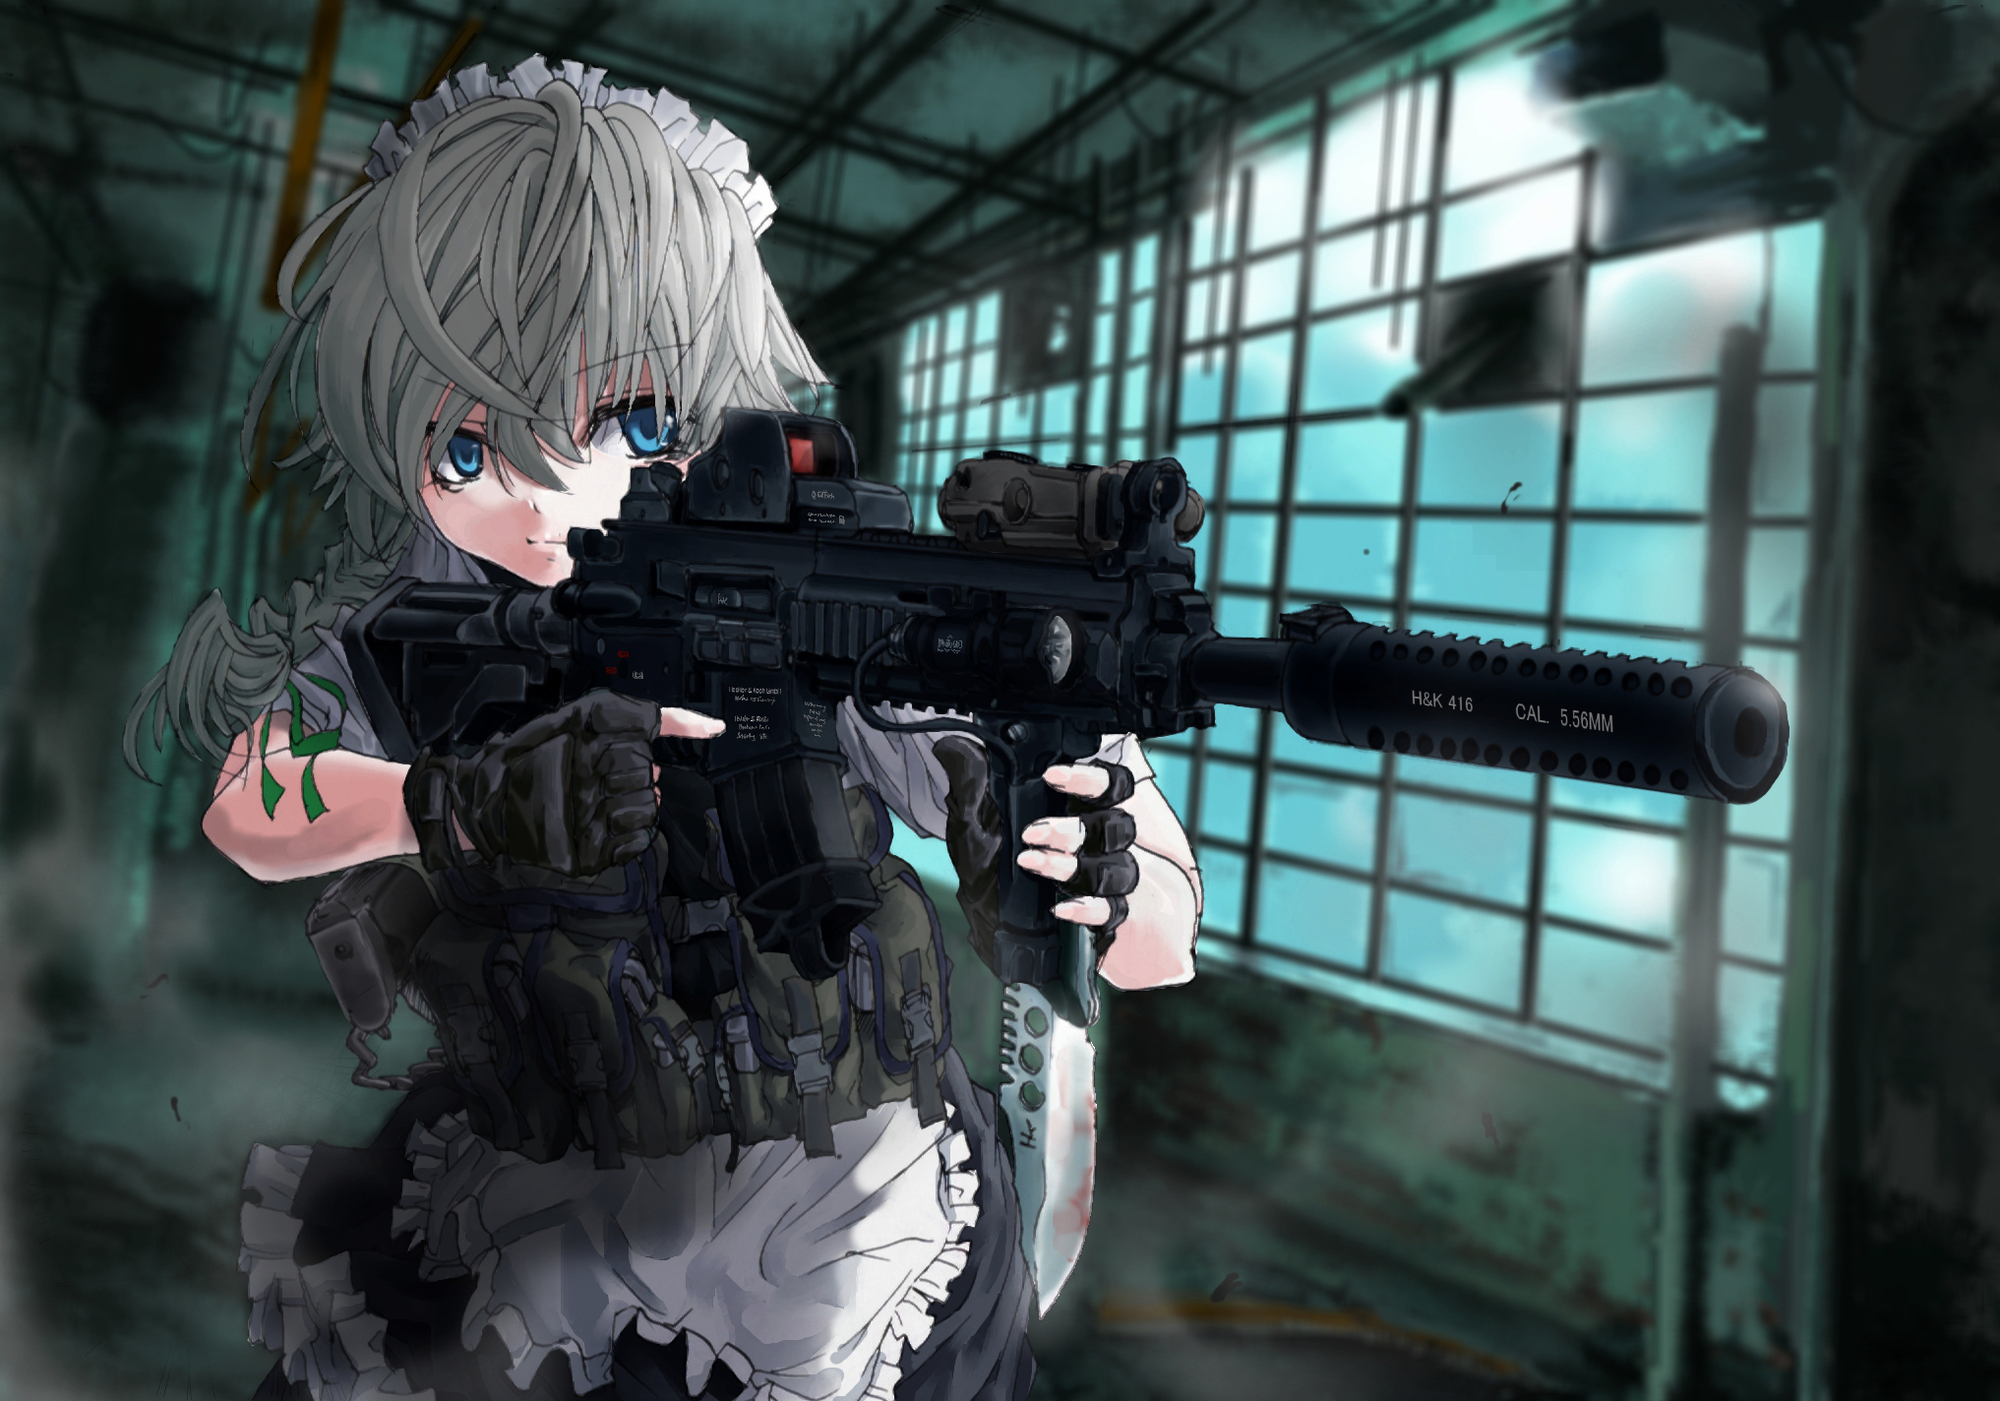 Touhou hd wallpaper background image 2000x1401 id - Gun girl anime ...